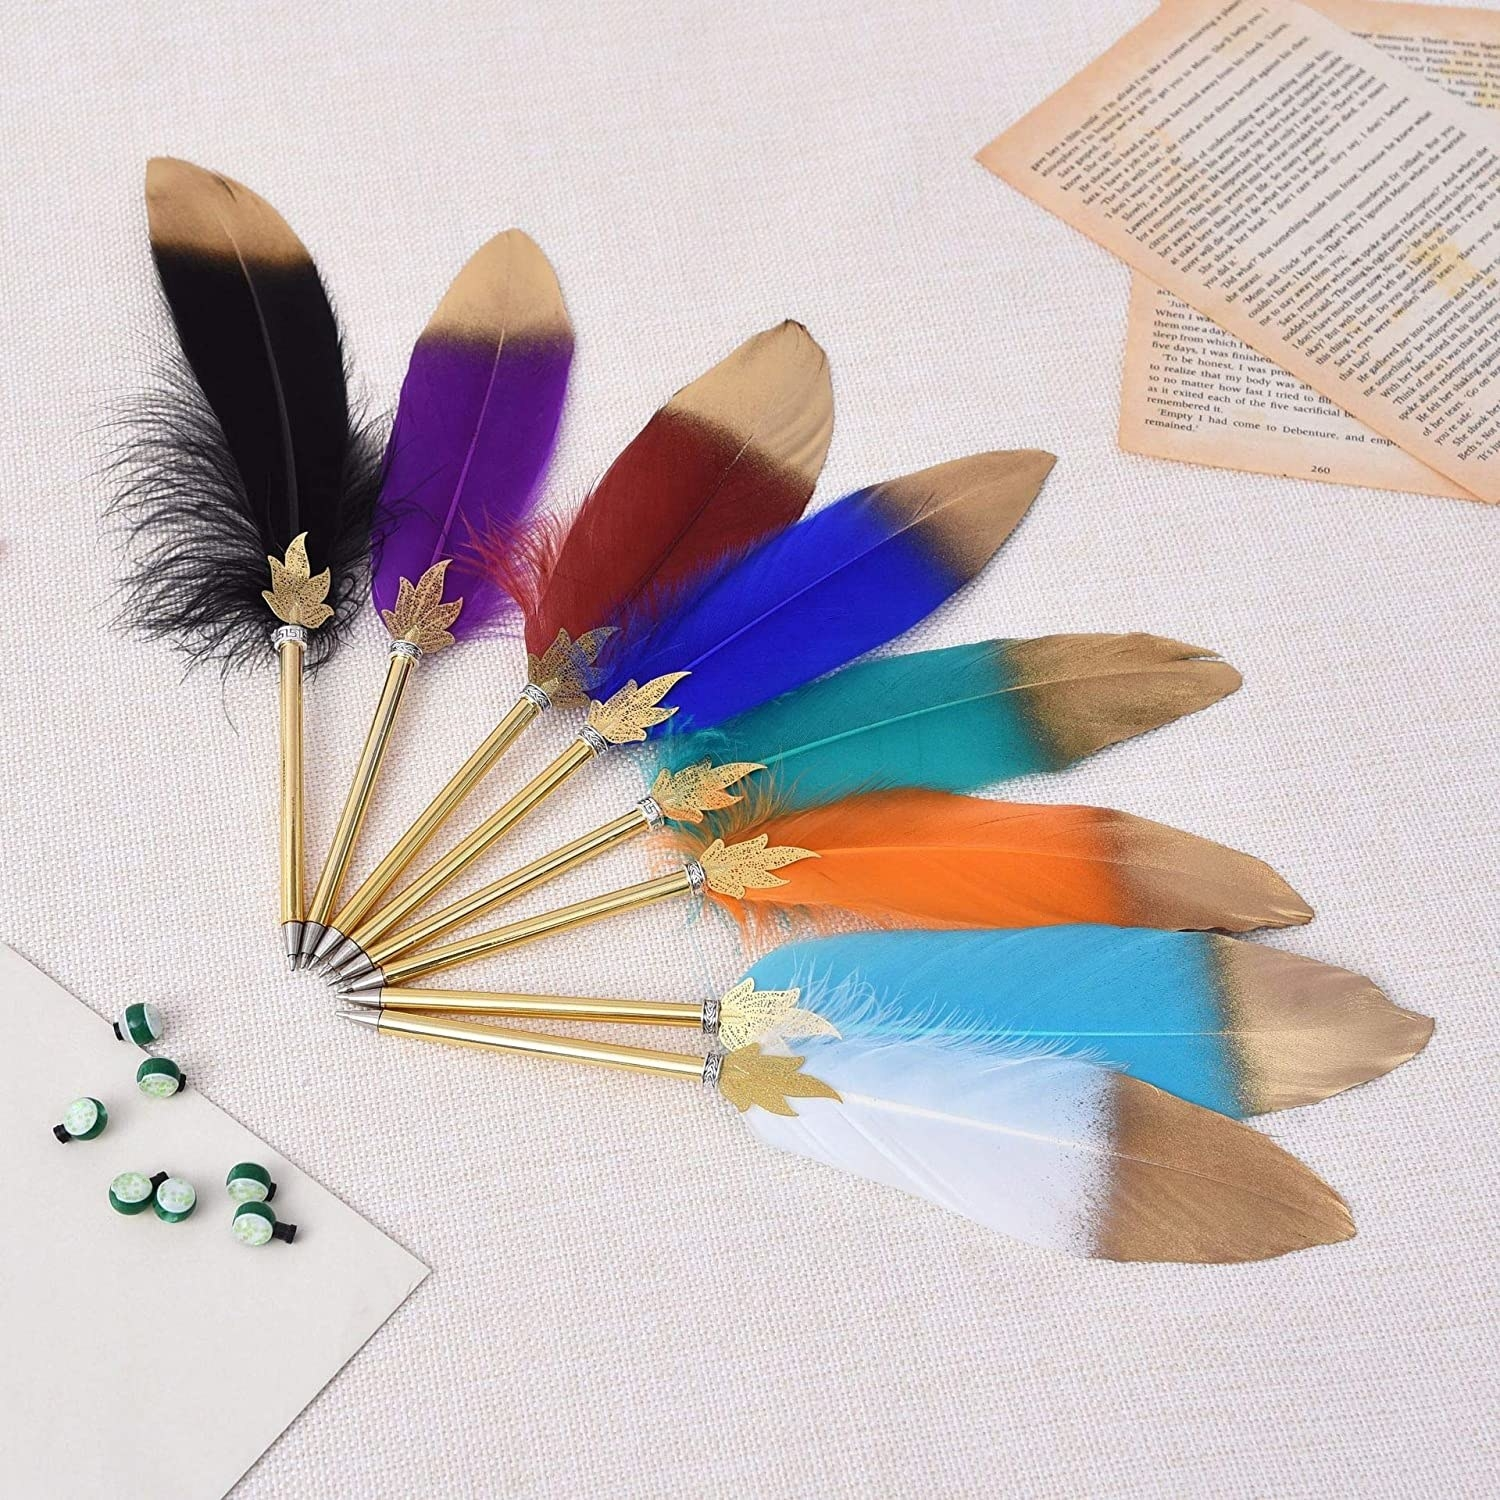 A set of pens with feather quills at the top